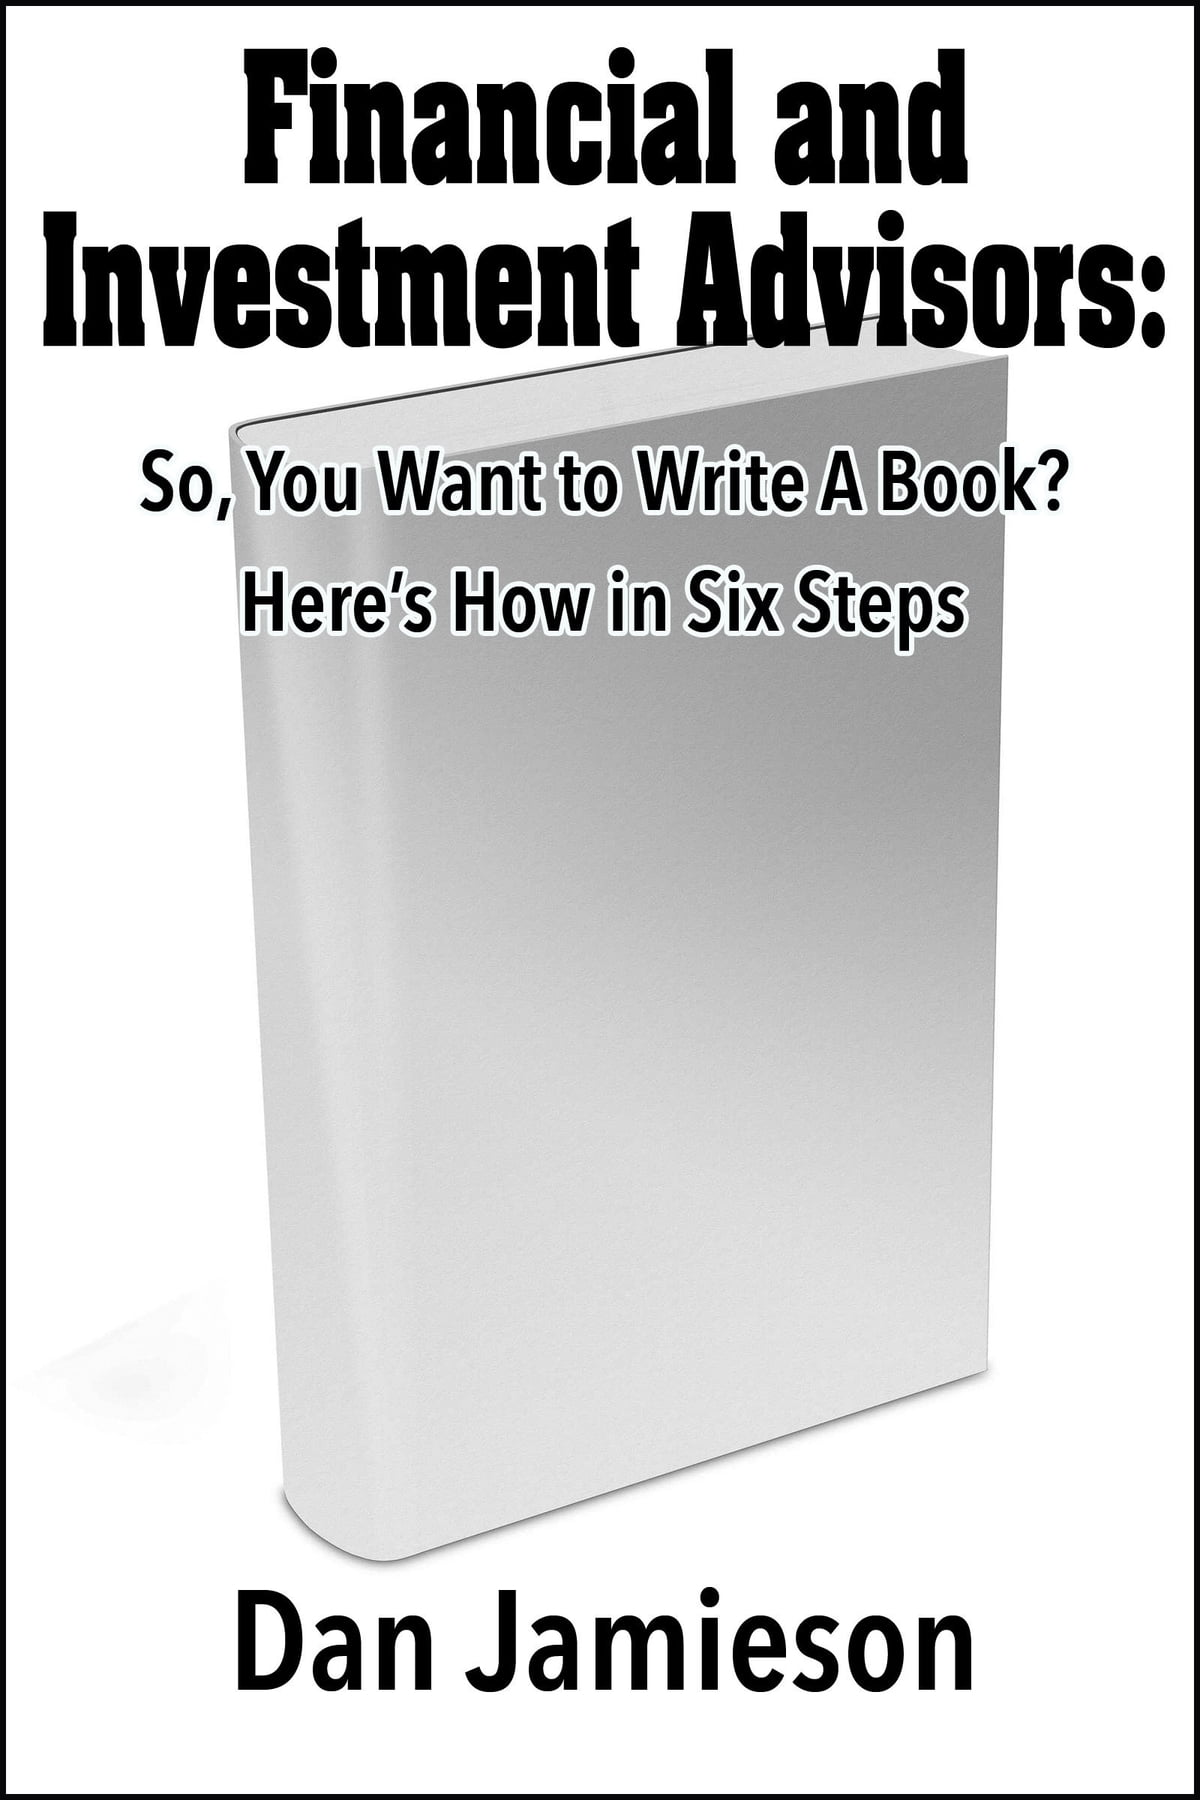 how to write a investment book for kindle